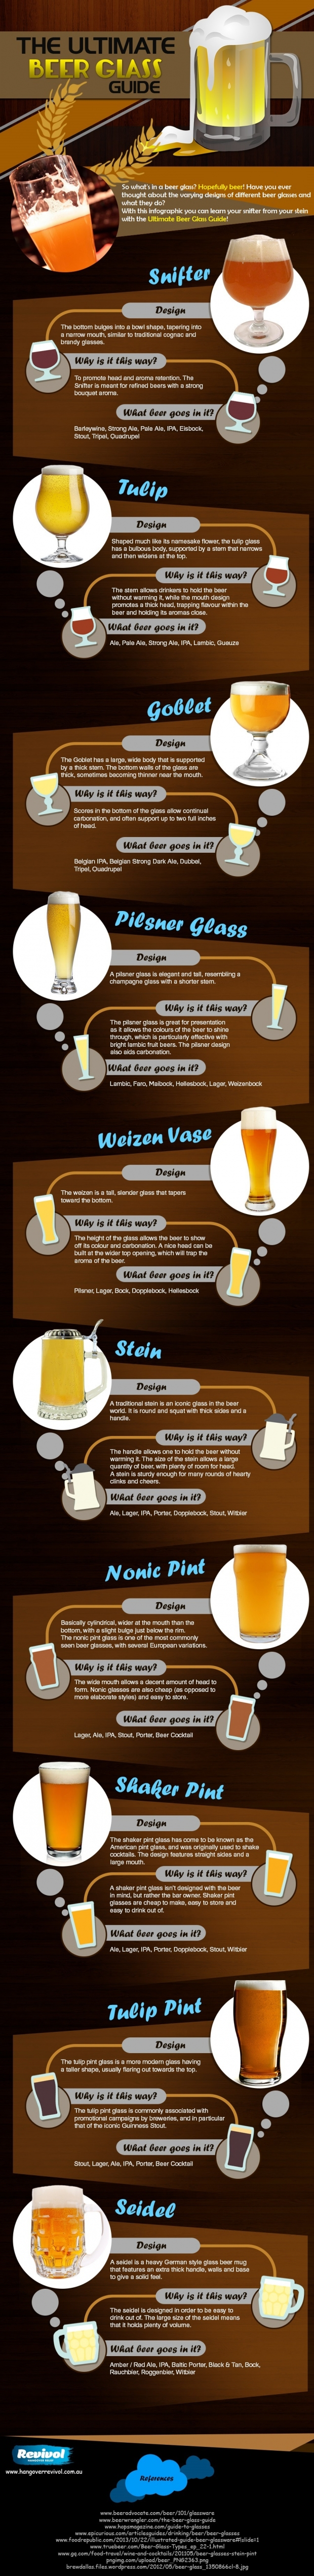 Hangover-Revivol-Beer-Glass-Guide-Infographic